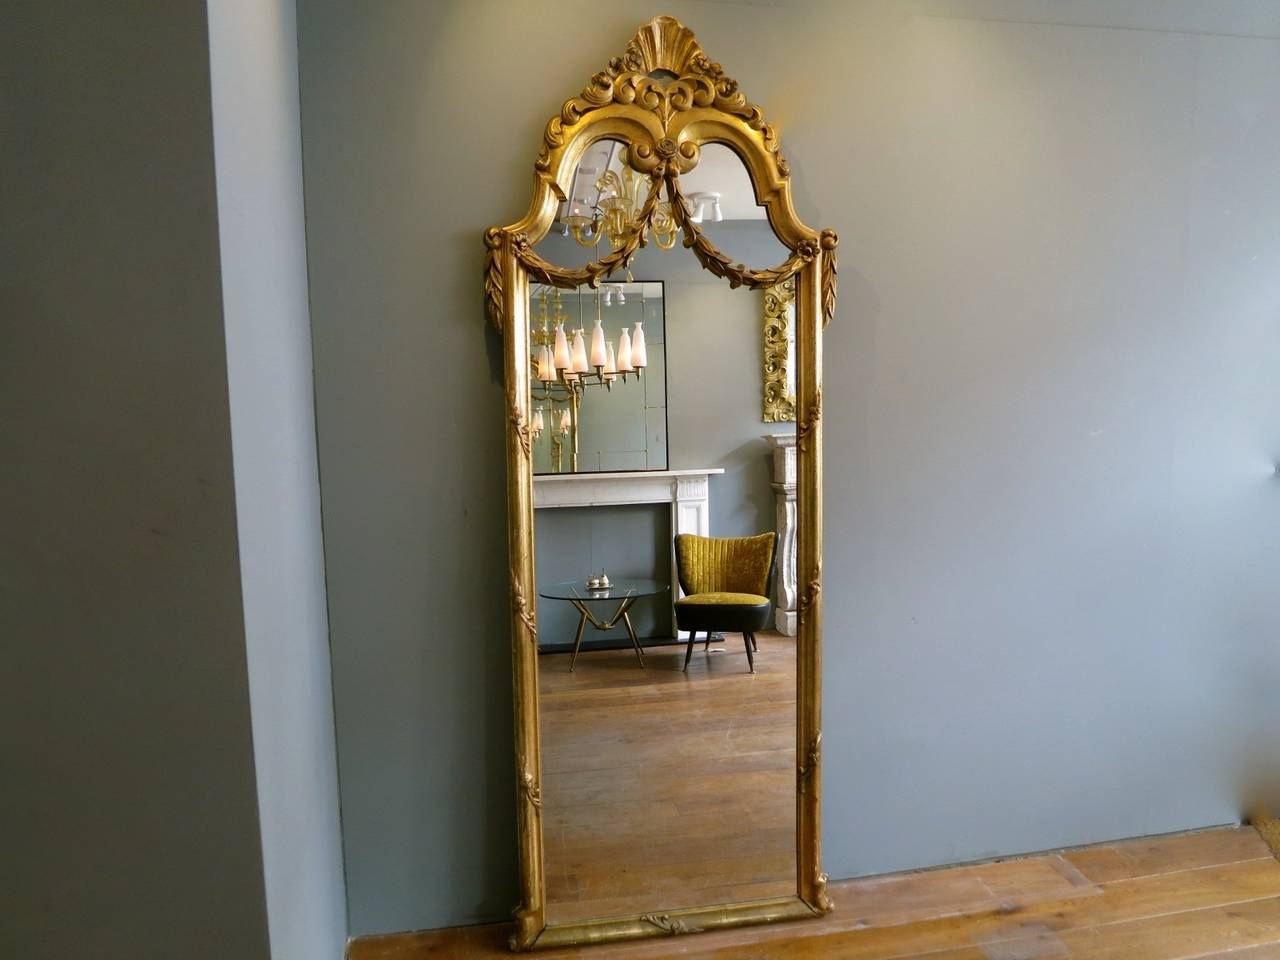 Antique French Gold Gilt Floor Standing Mirror At 1stdibs Inside French Gold Mirror (Image 1 of 15)